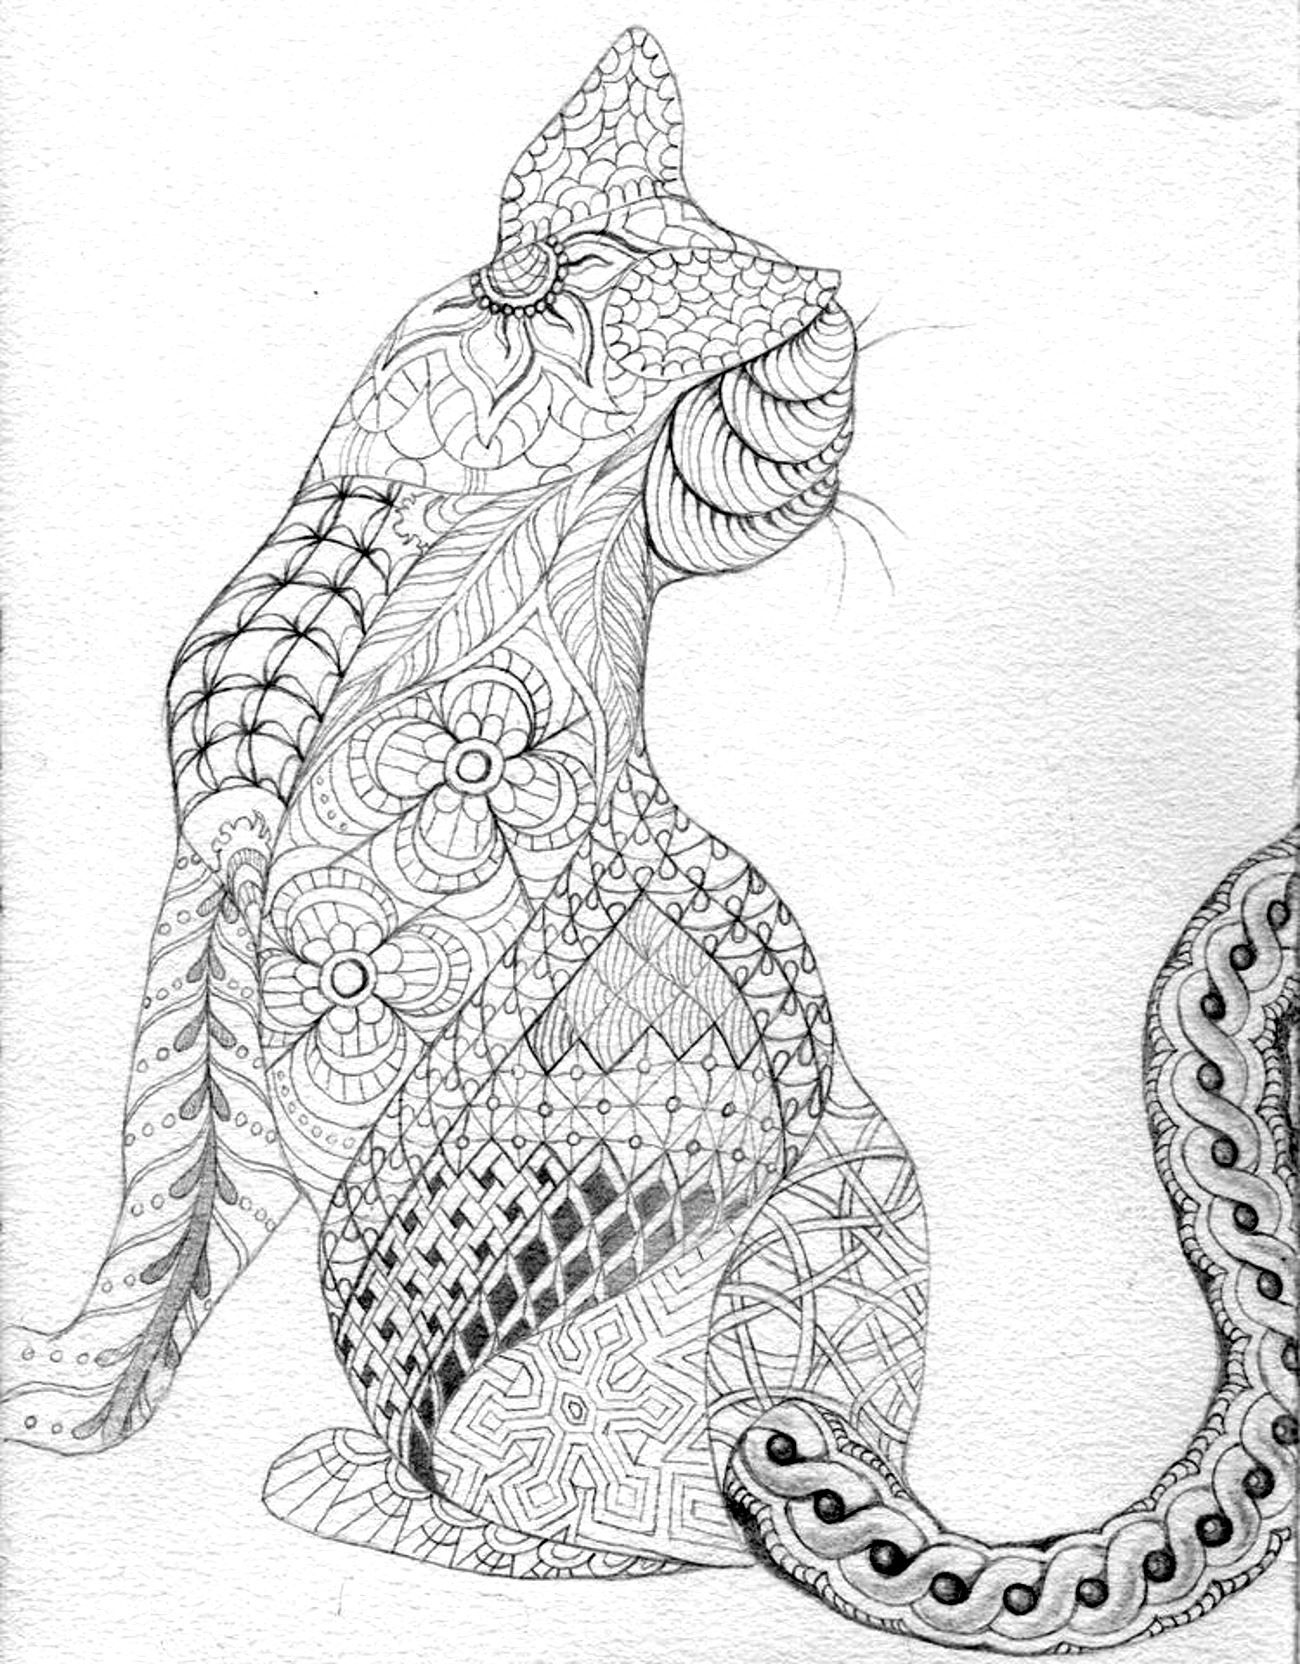 Printable coloring pages zentangle - To Print This Free Coloring Page Coloring Adult Difficult Cat From Back Click On The Printer Icon At The Right Coloring Designs Pinterest Icons And